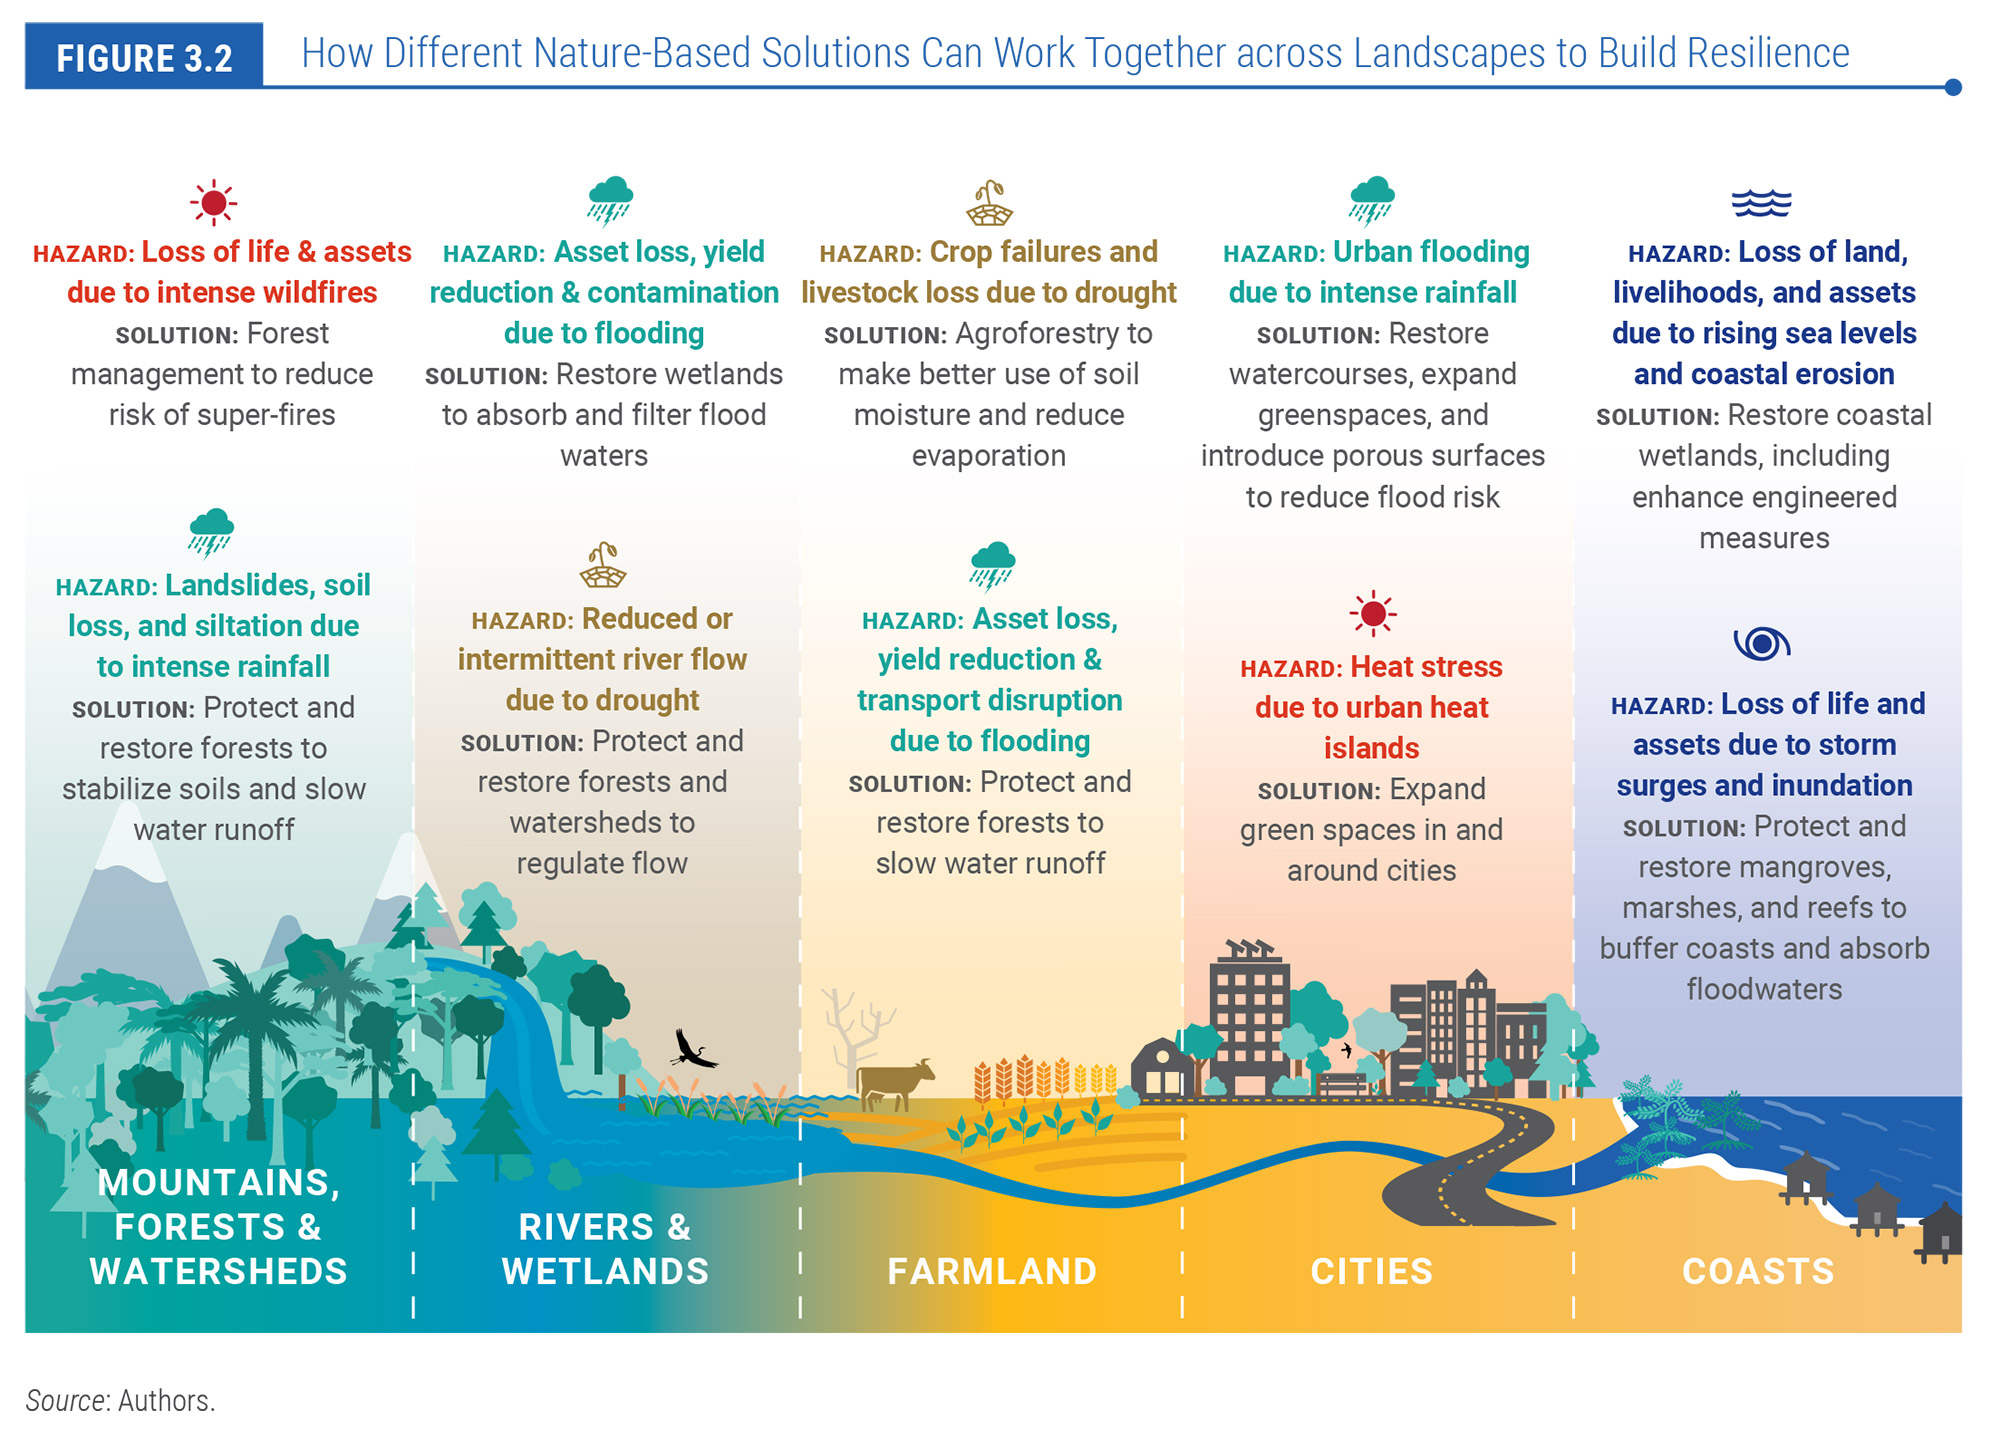 How Different Nature-Based Solutions Can Work Together across Landscapes to Build Resilience